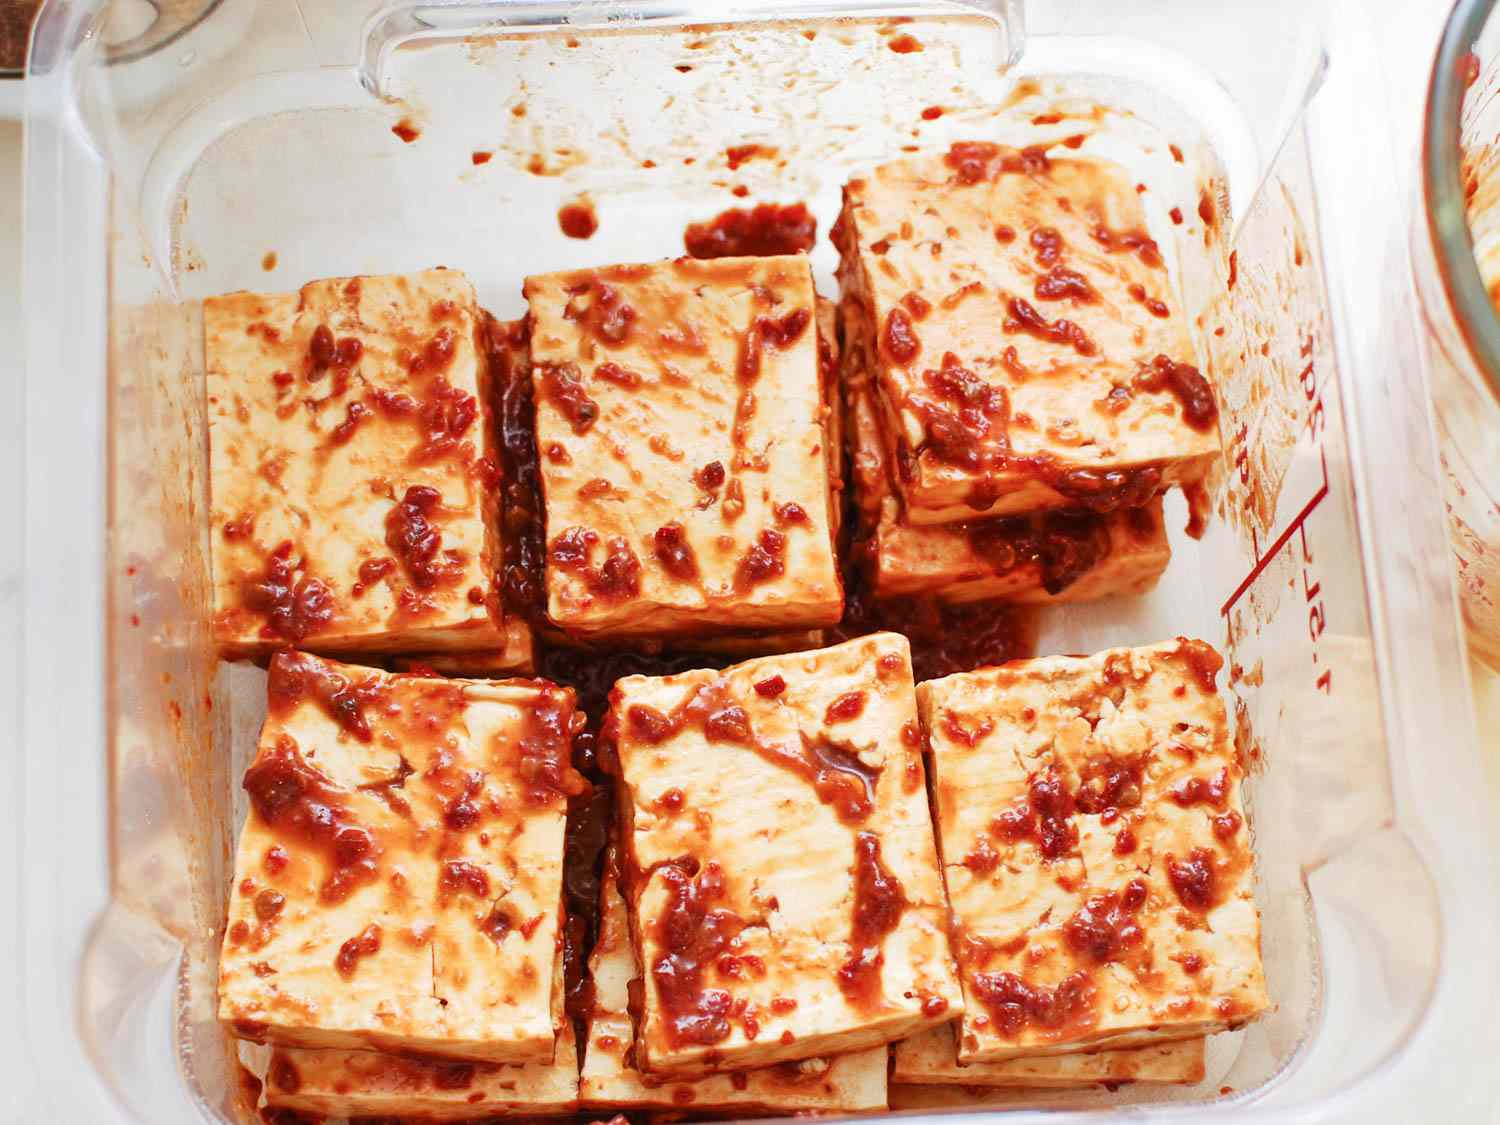 06182015-grilled-tofu-chipotle-miso-sauce-shaozhizhong-8.jpg